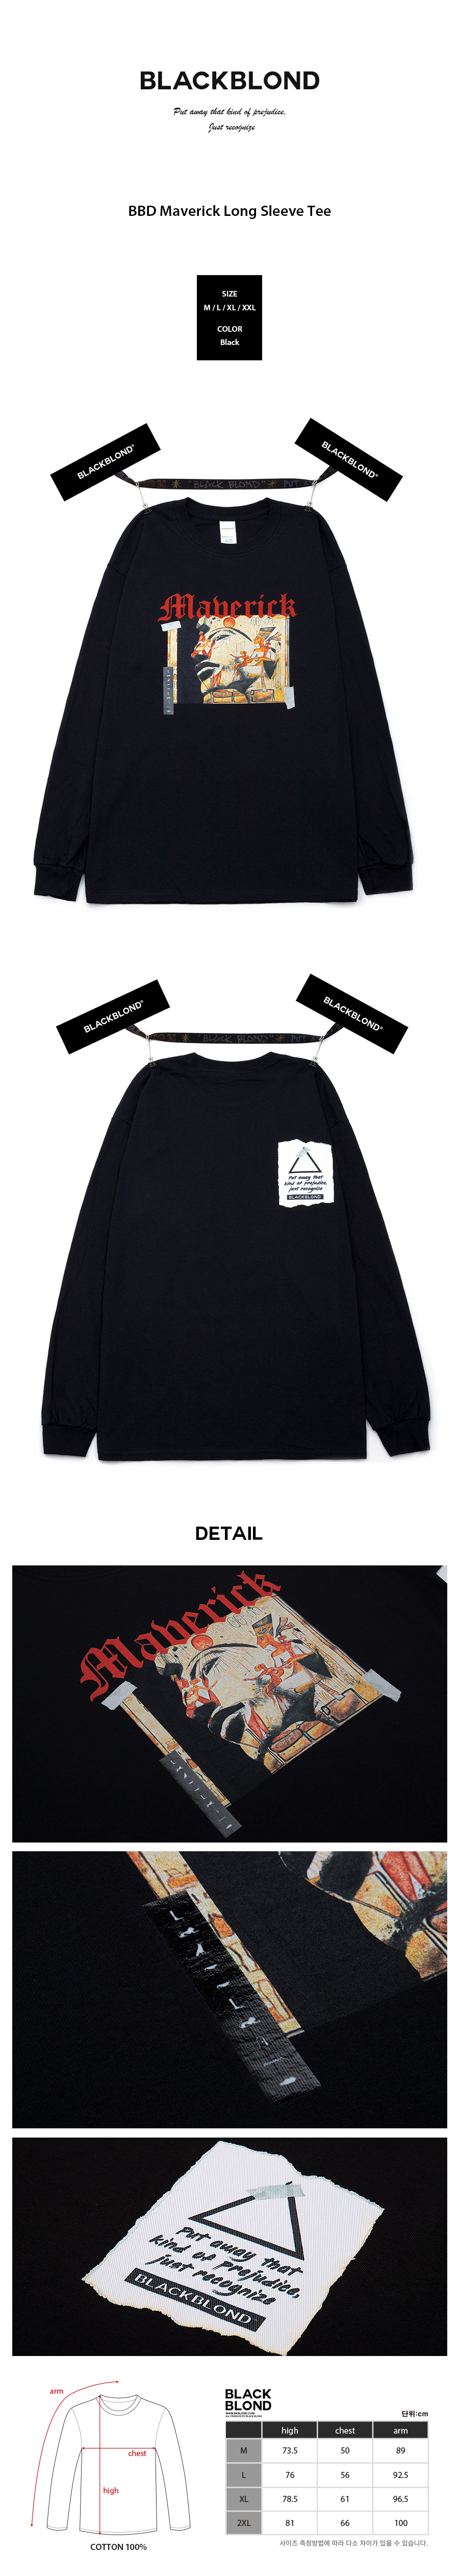 BLACKBLOND - BBD Maverick Long Sleeve Tee (Black)